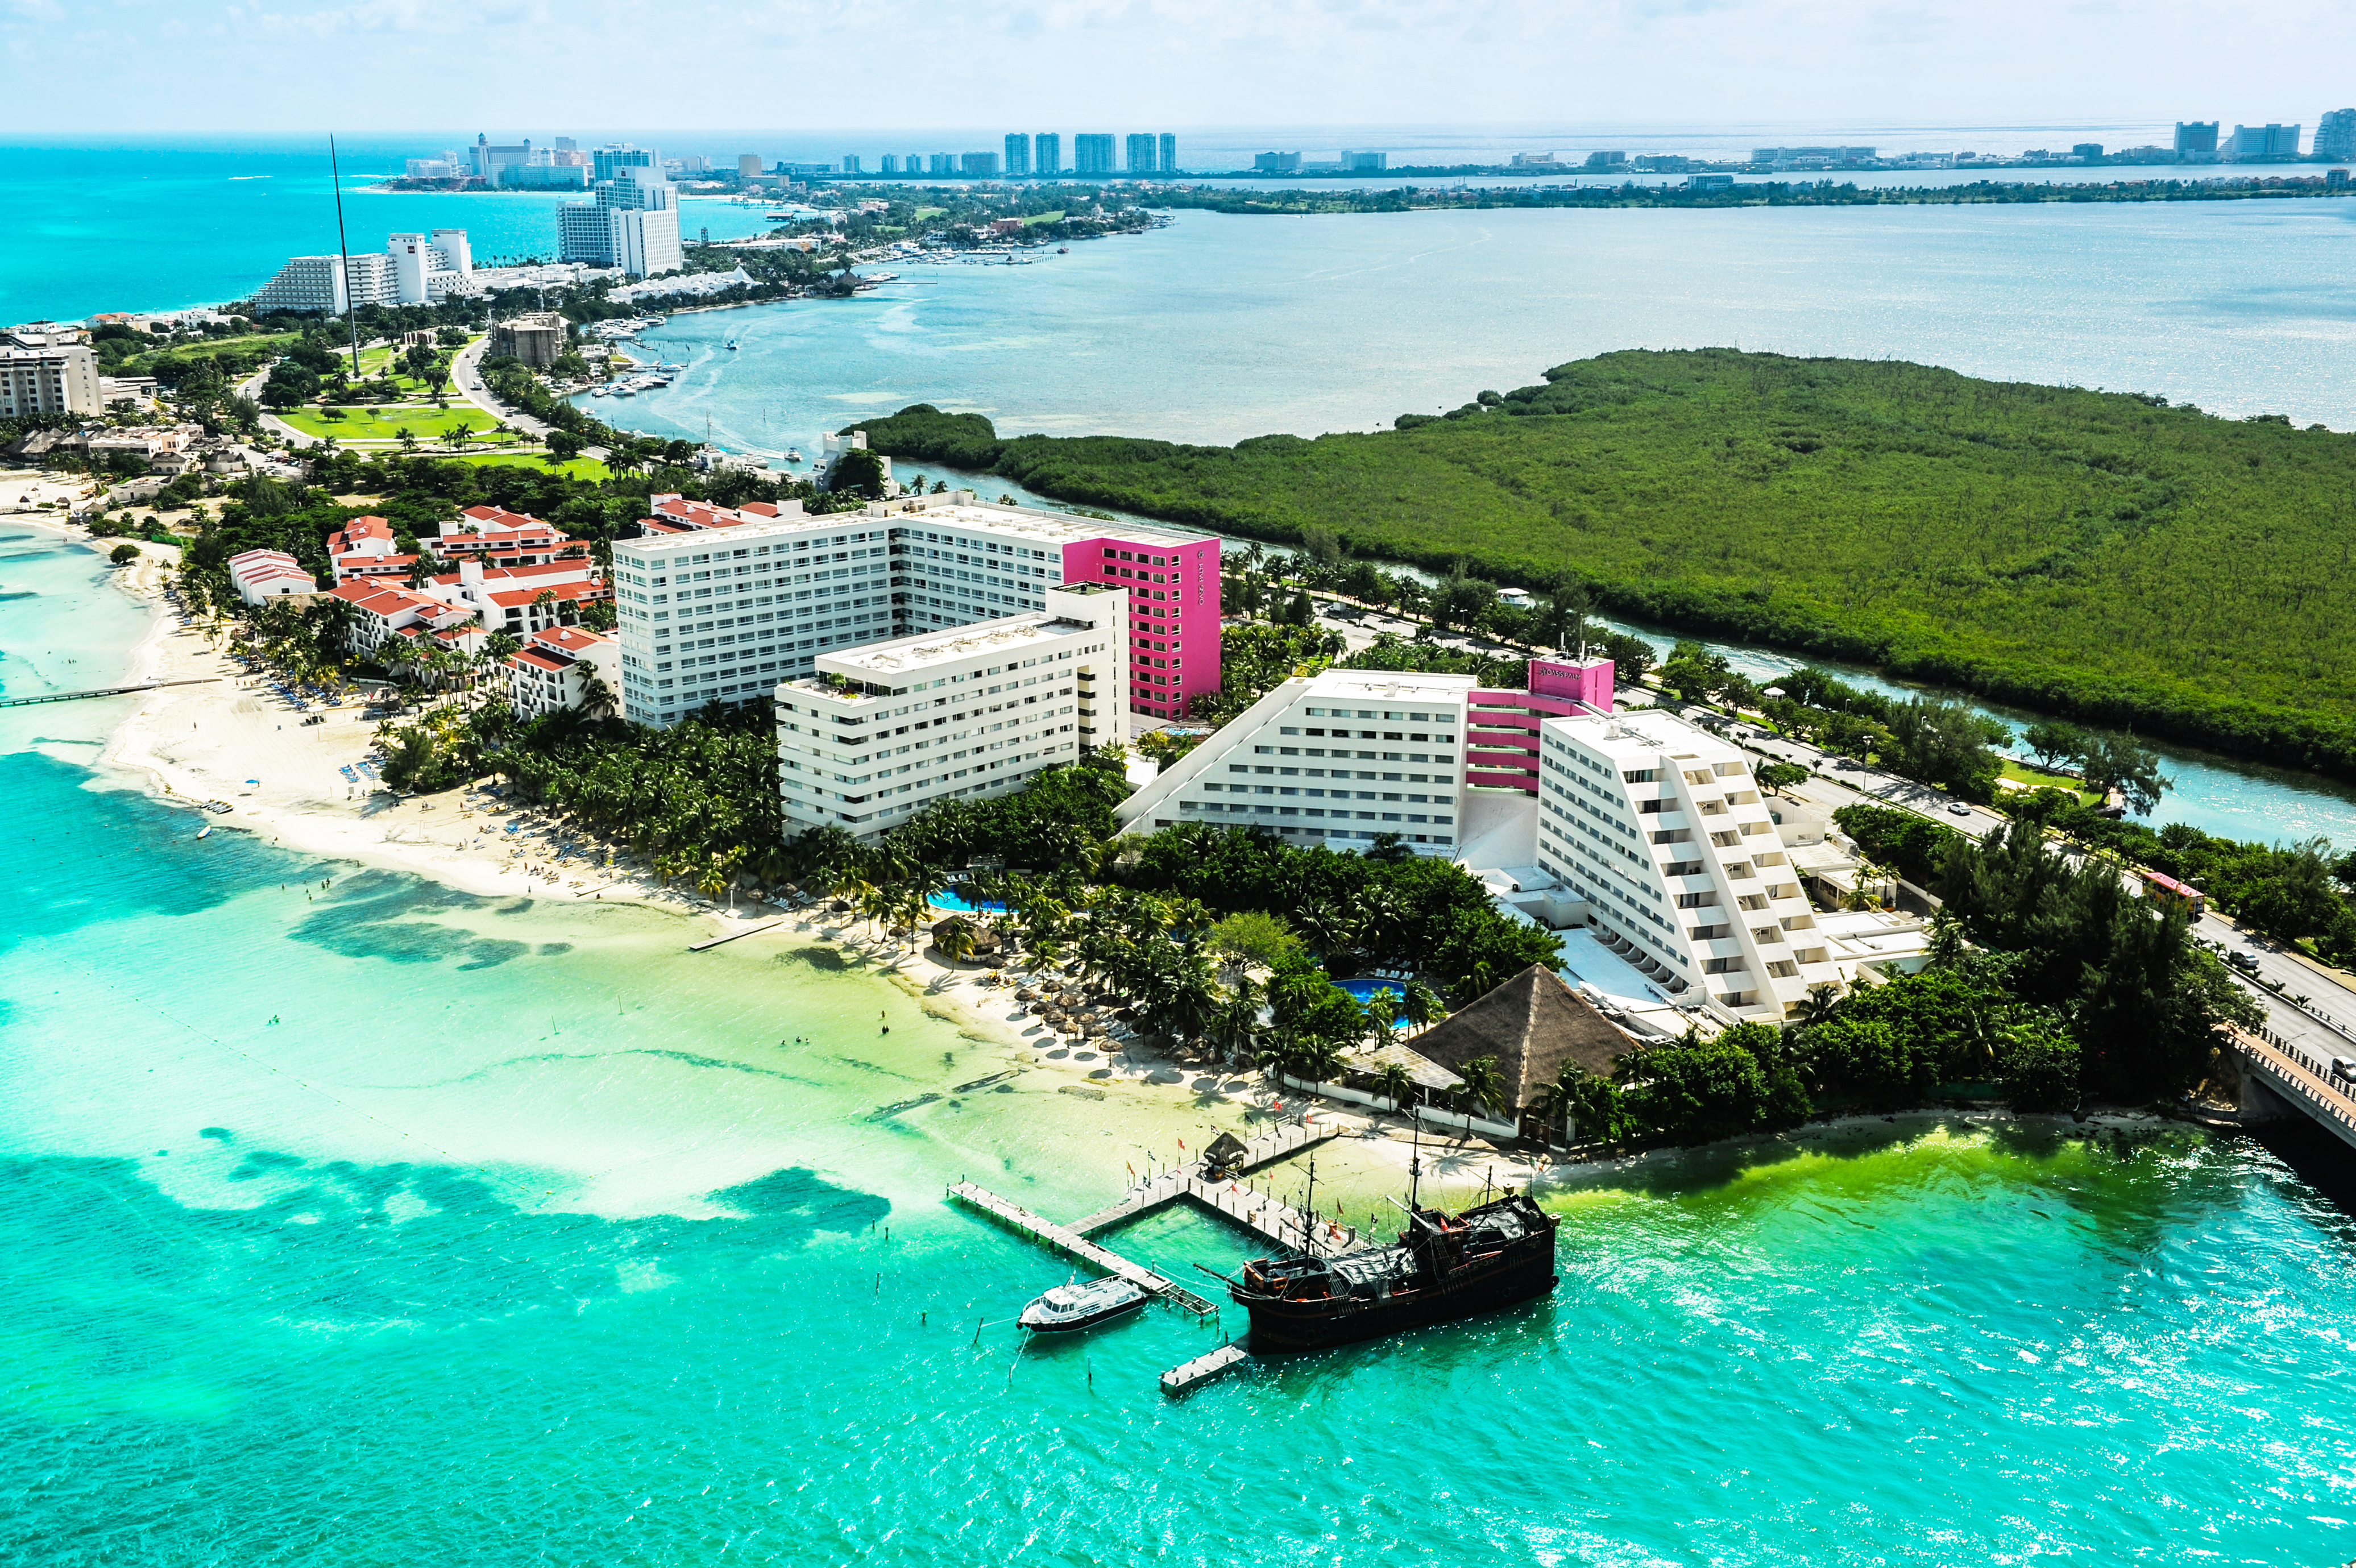 Discover Cancun's Best Family Resort